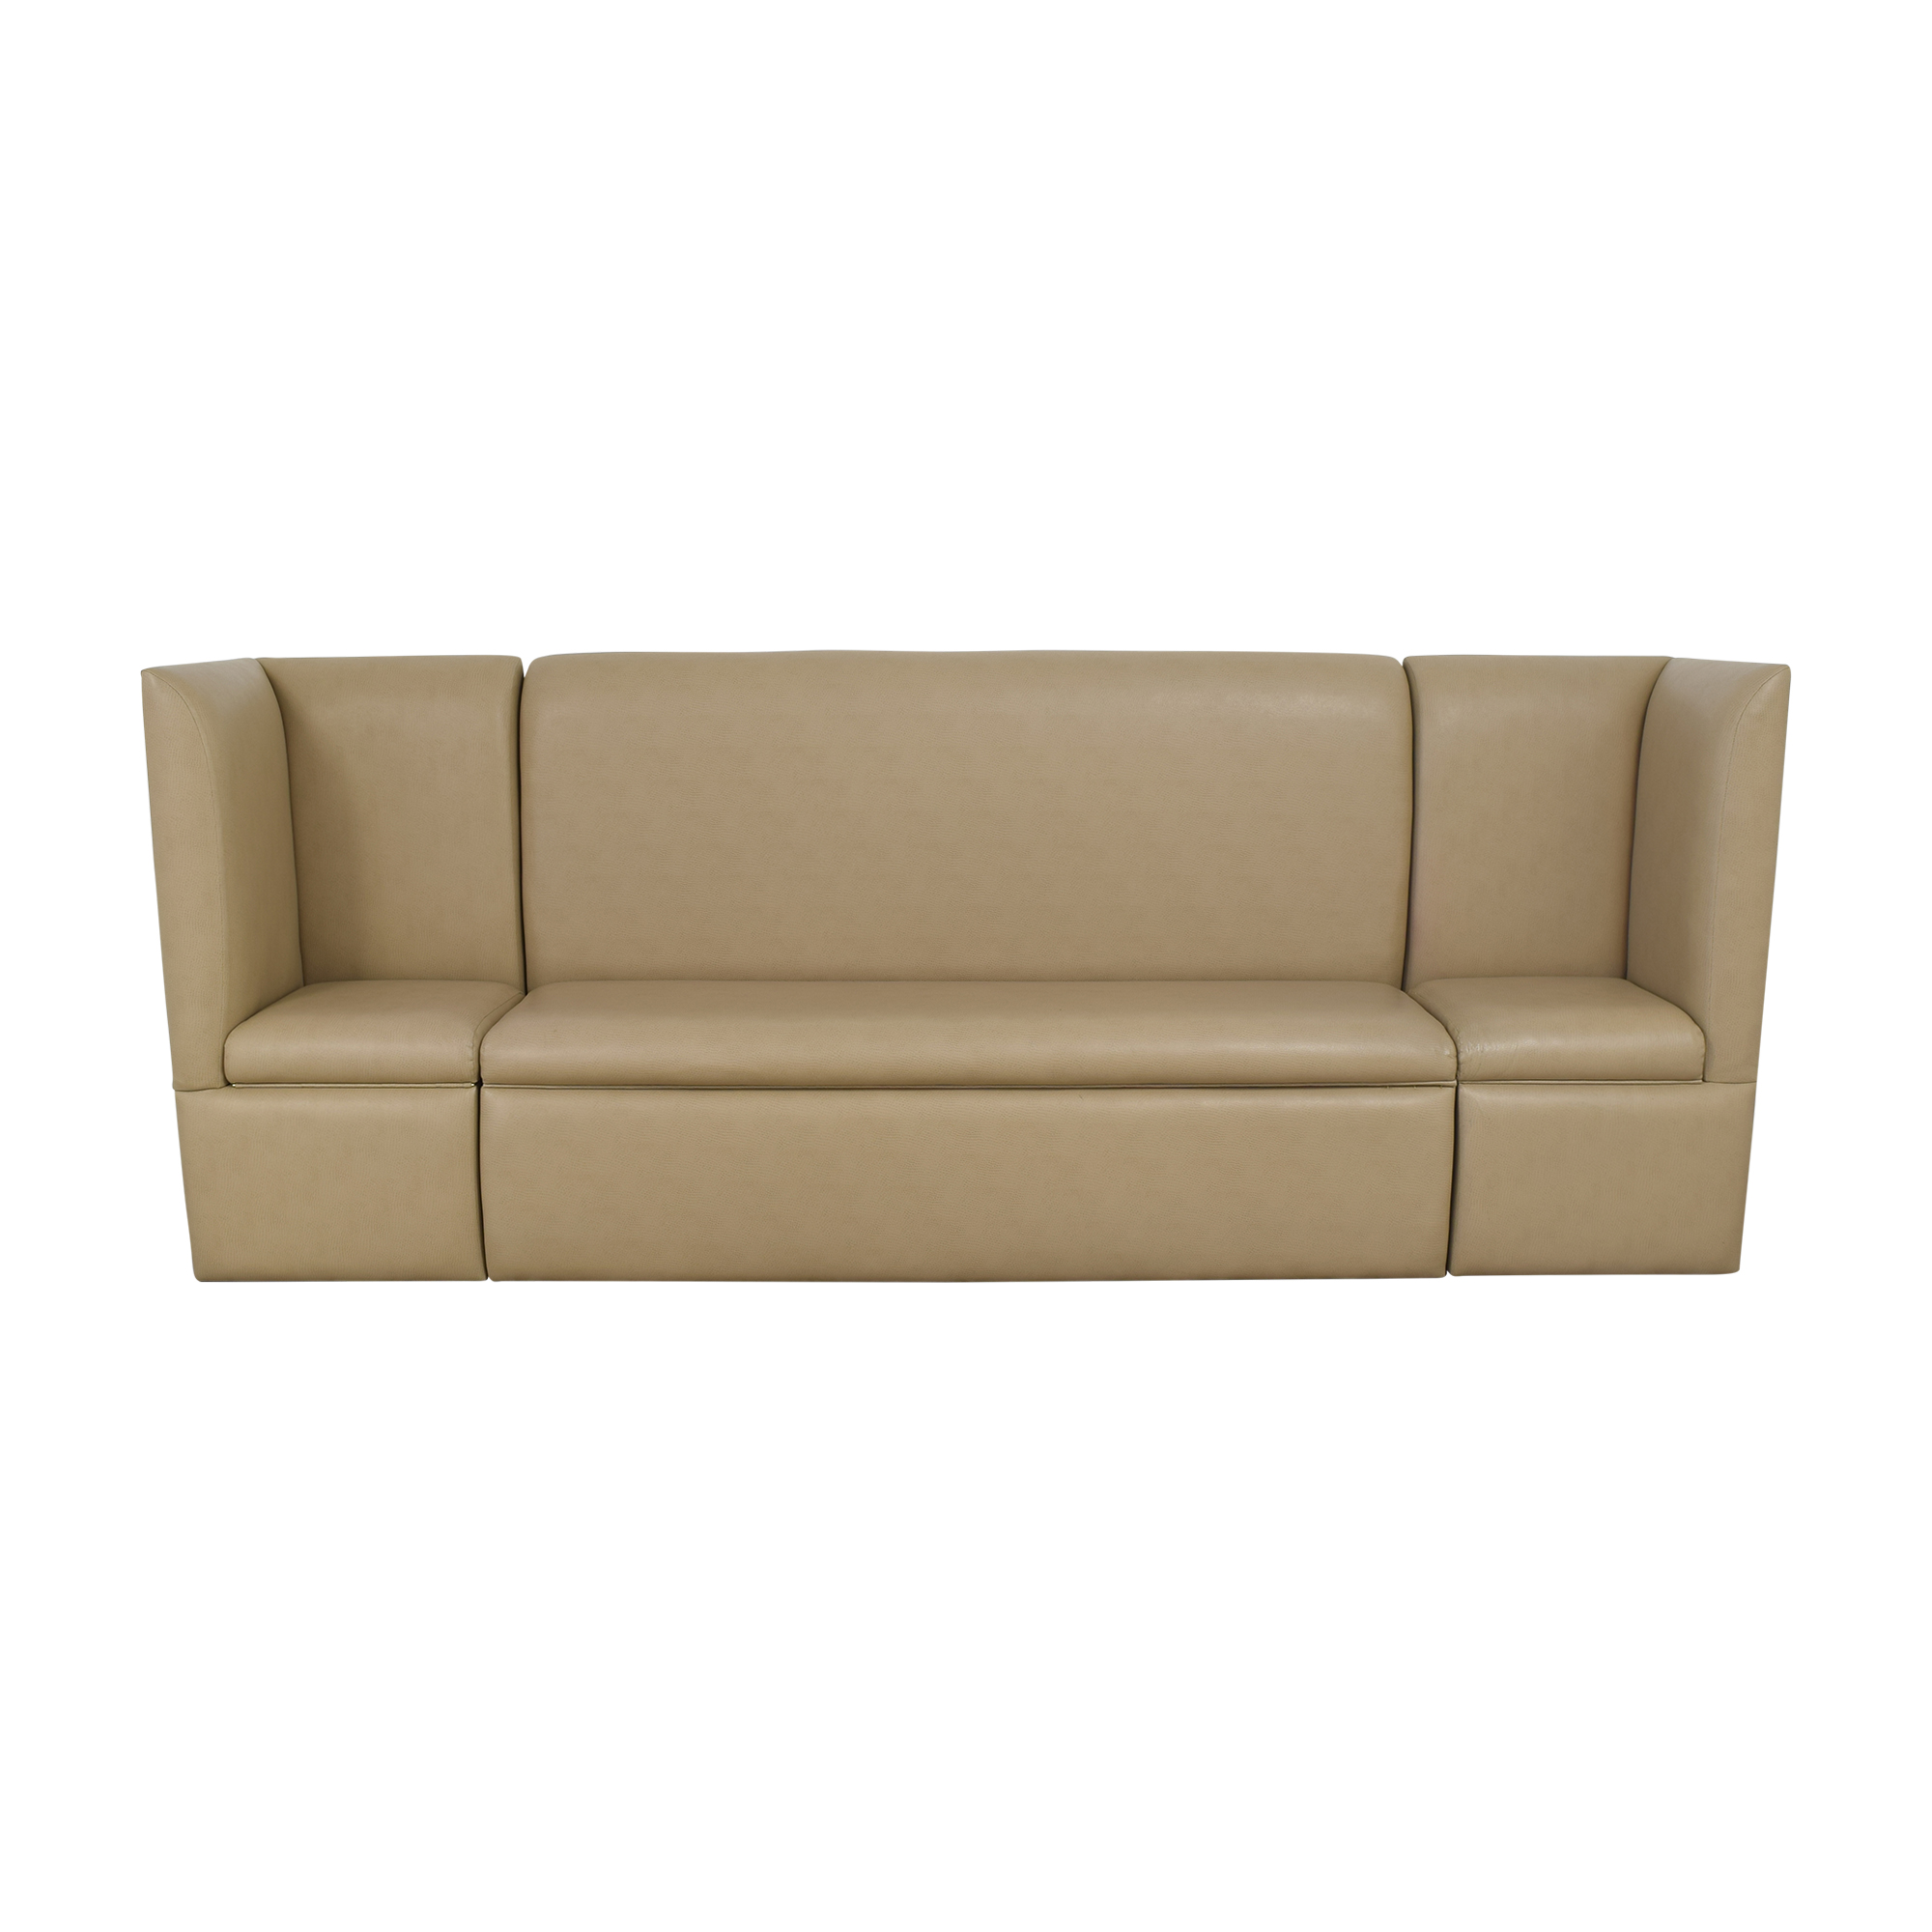 Custom Contemporary Sectional Storage Banquette discount